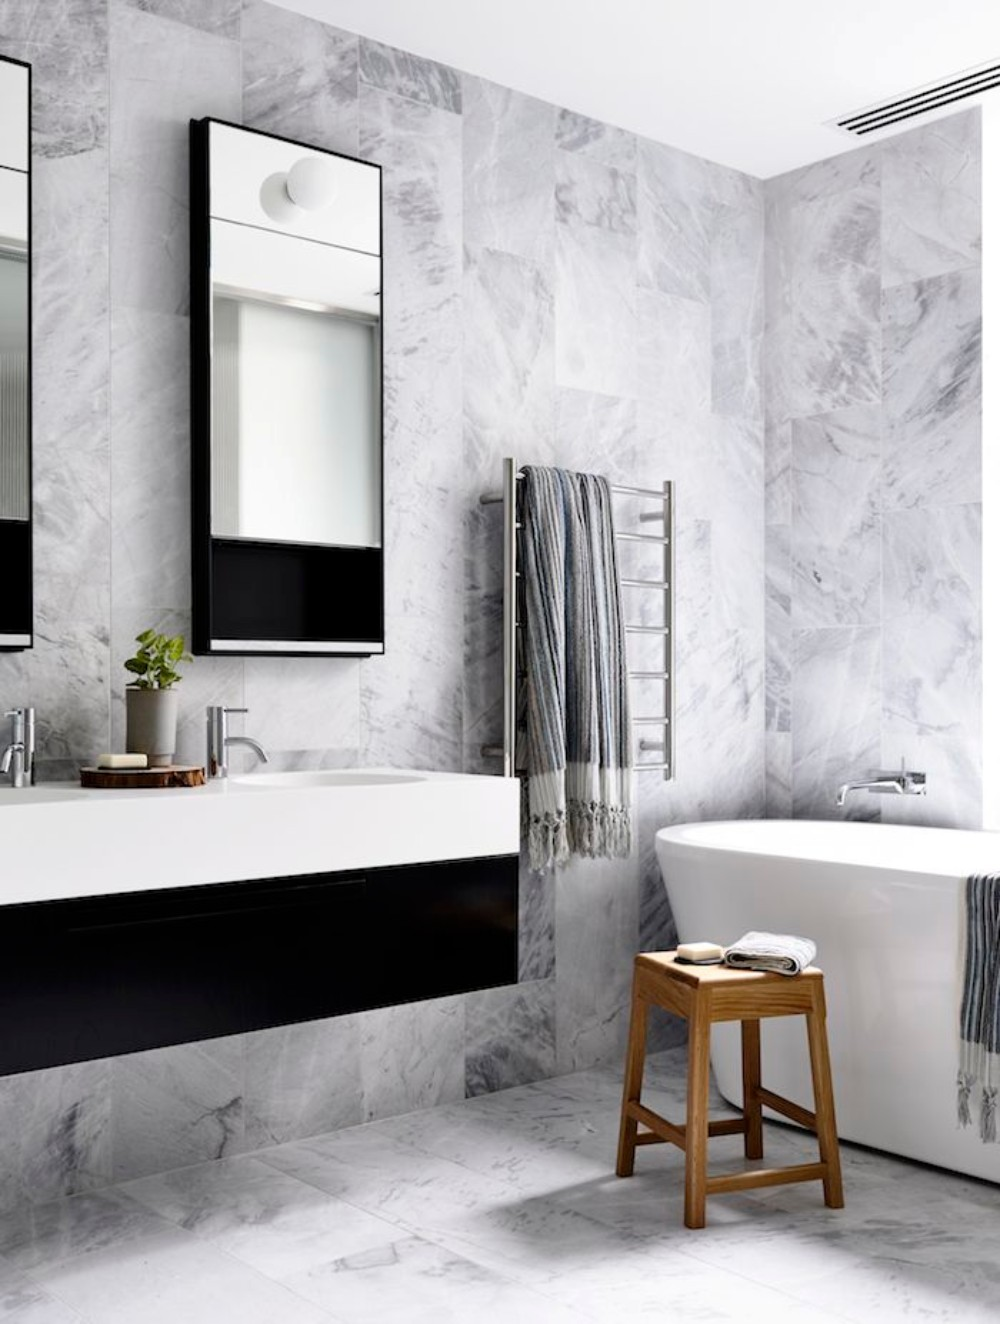 Get Inspired With 25 Black And White Bathroom Design Ideas